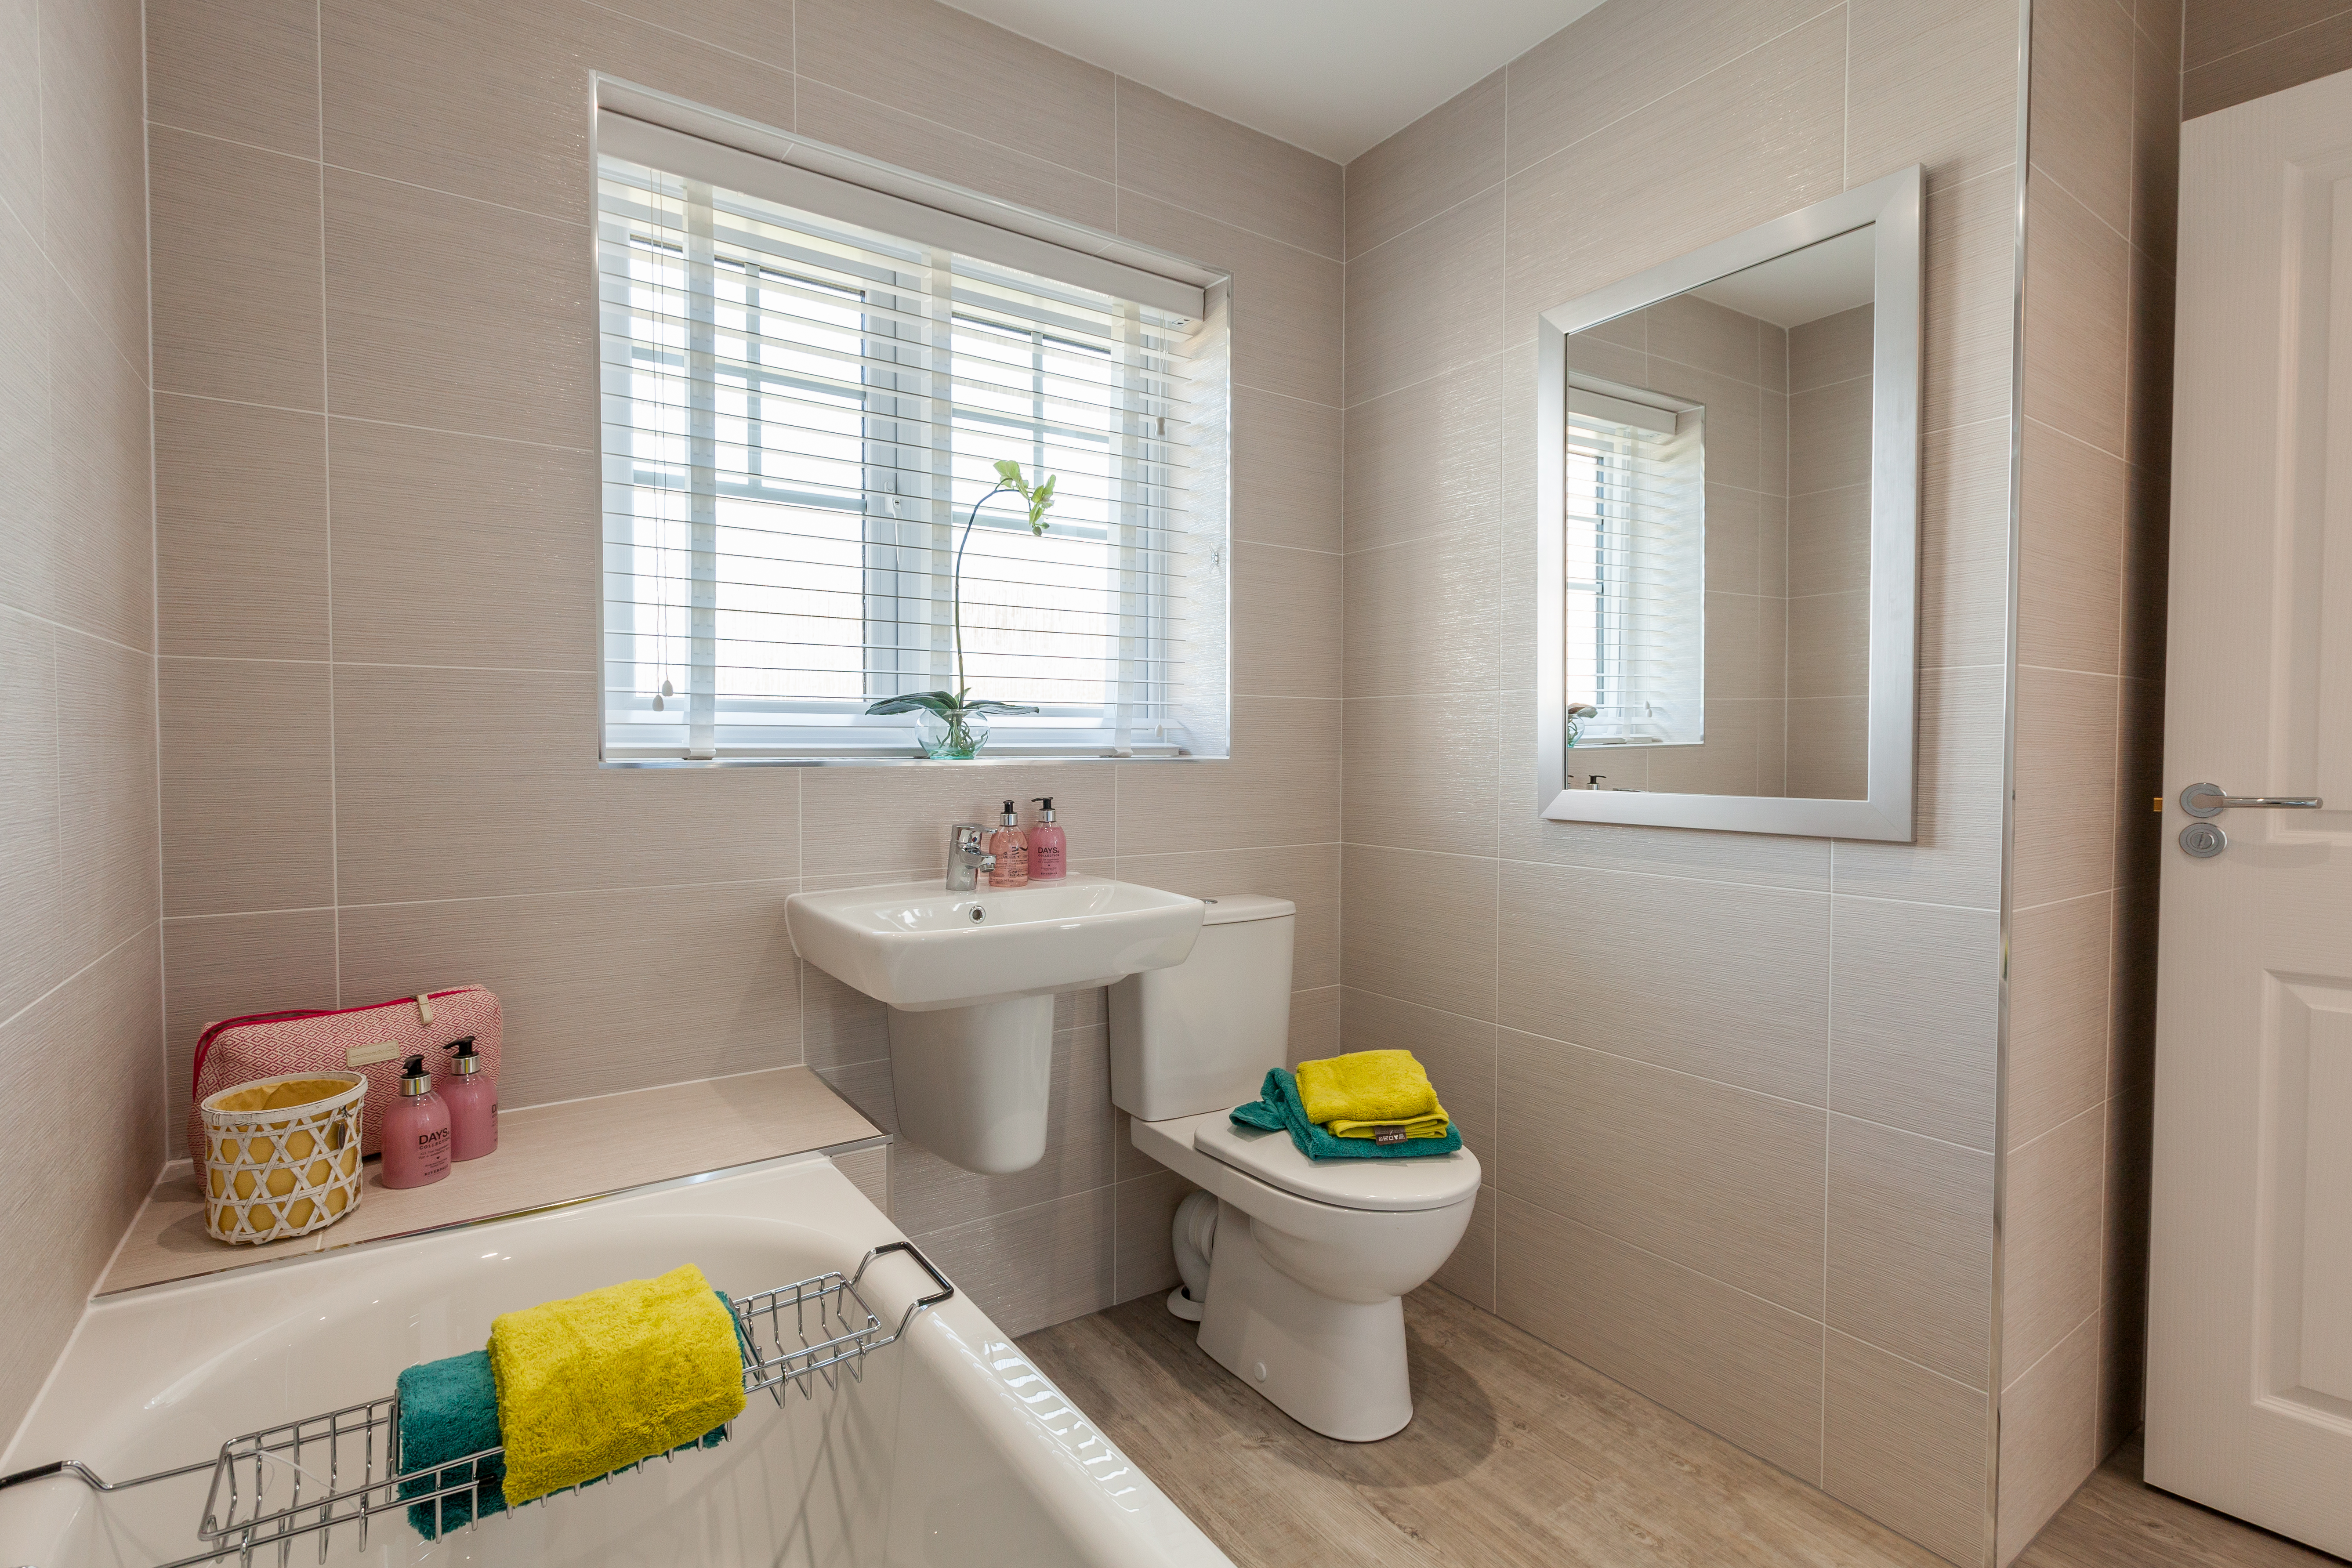 TW NY_Elderwood Park_PD32_Aldenham_Bathrooom